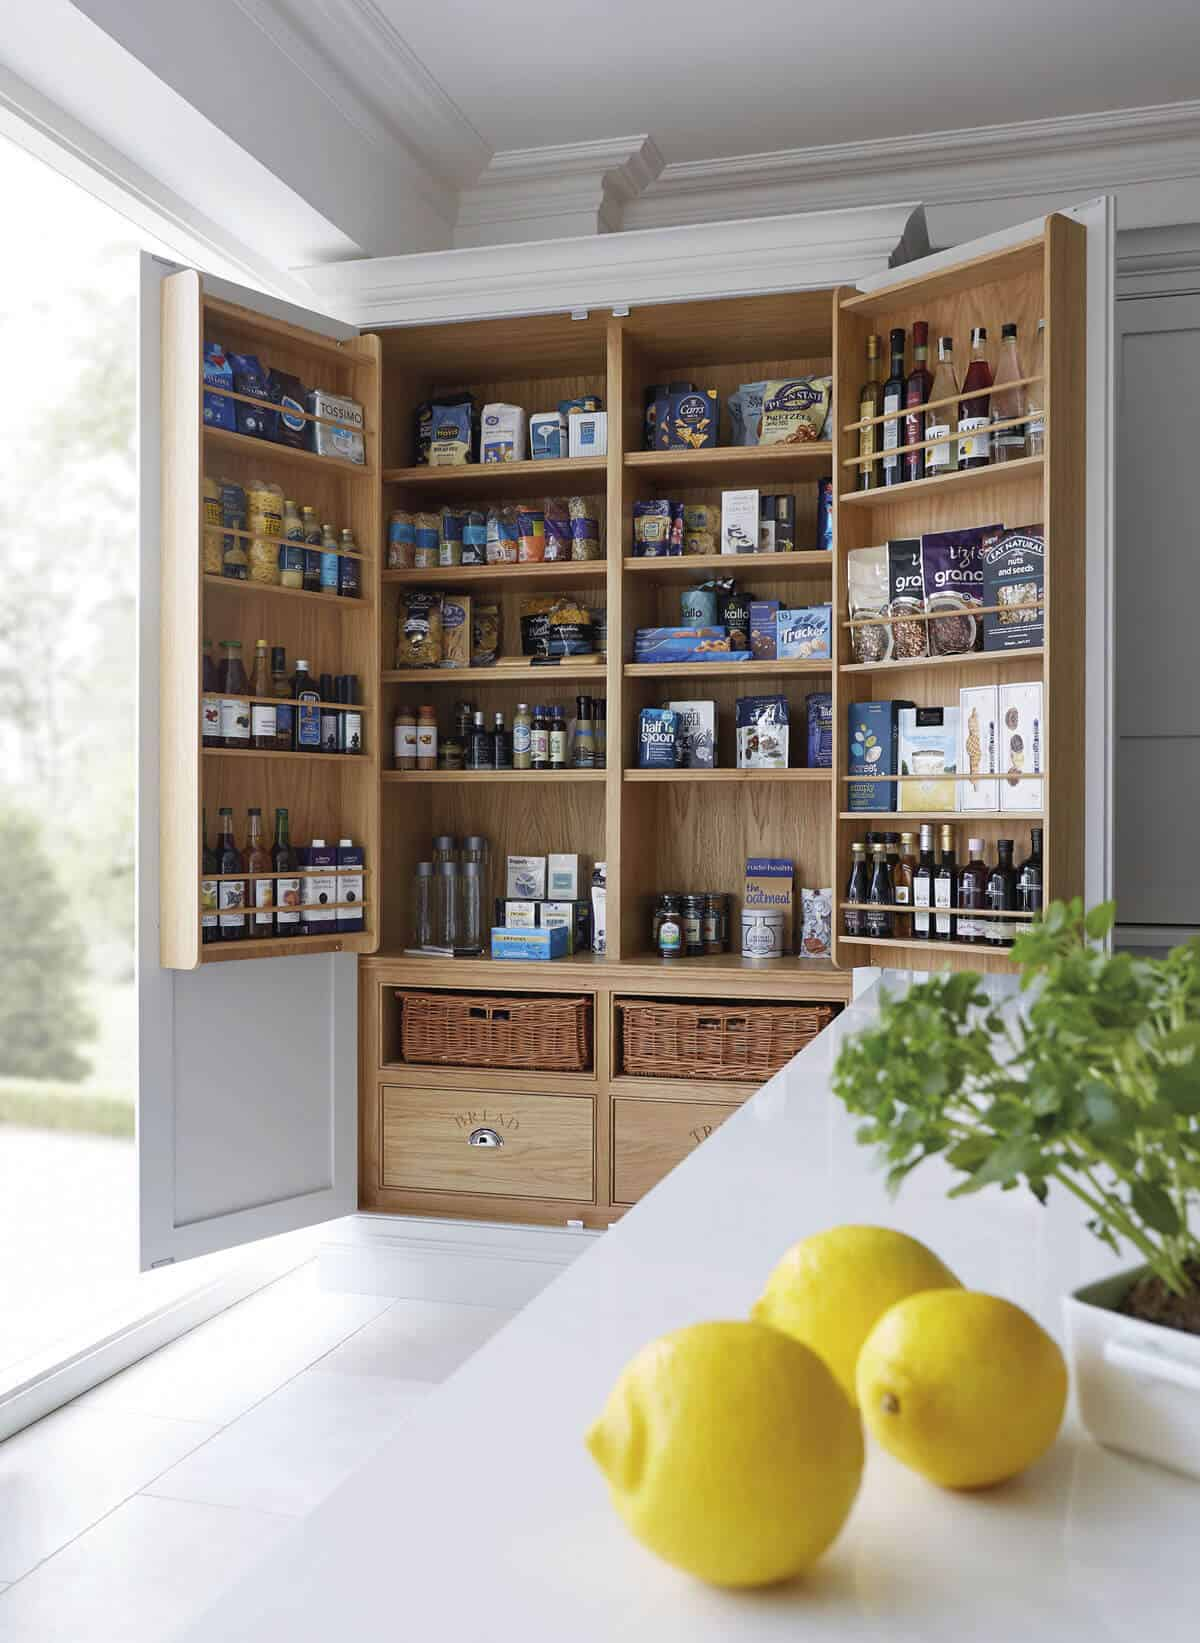 How To Choice A Smart Pantry Door – 10 Ingenious Ideas